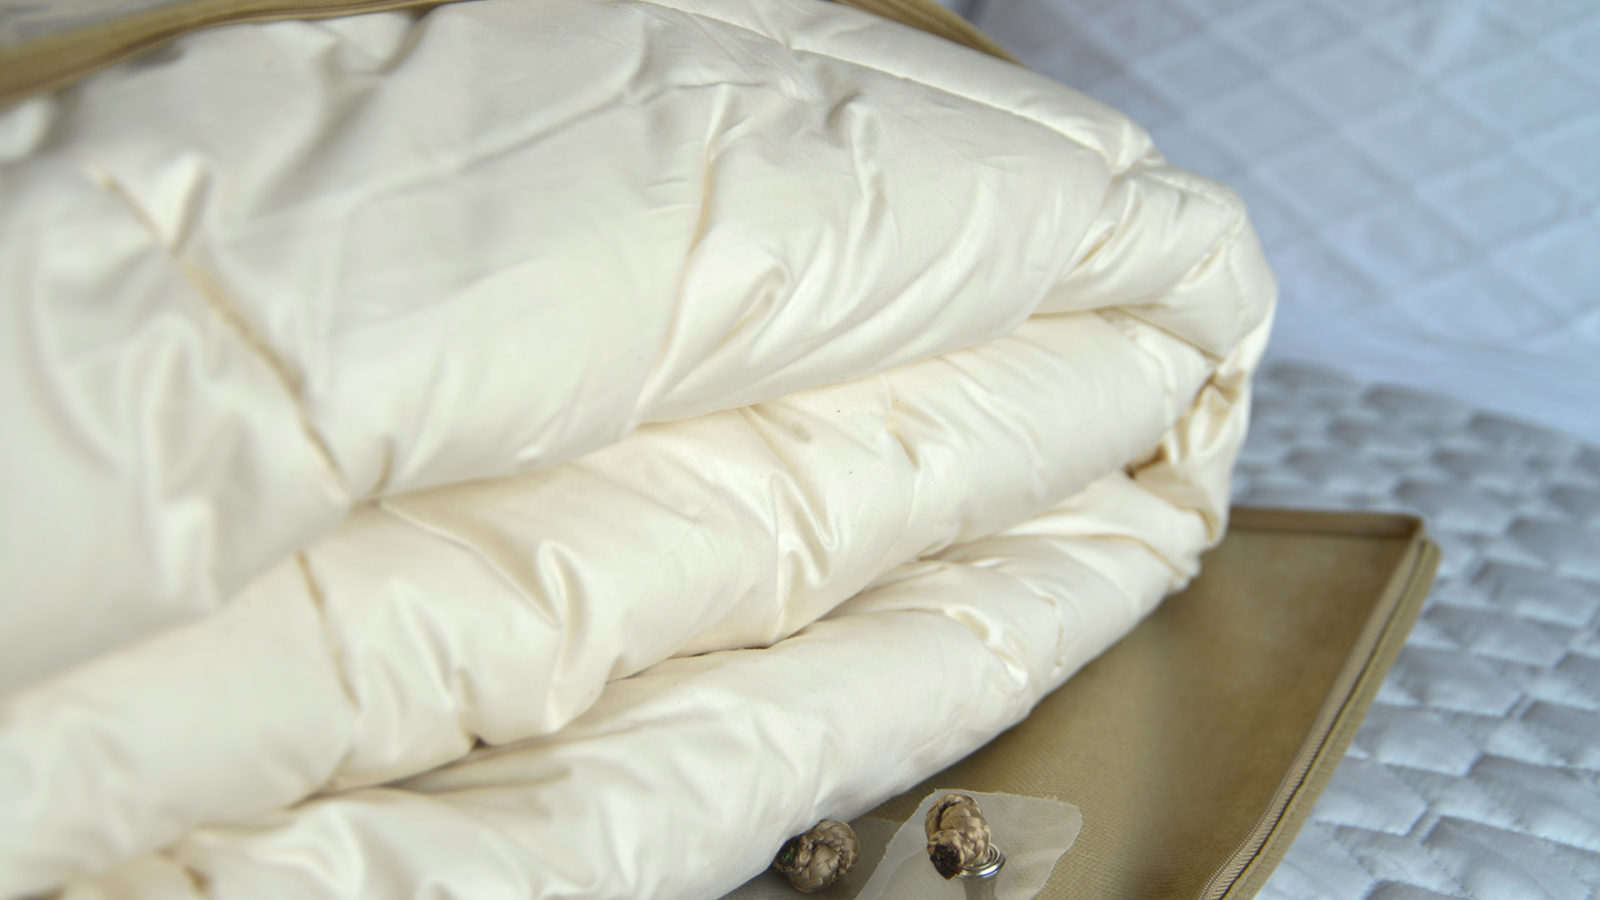 Natural kapok and organic cotton filled duvet suitable for Vegans